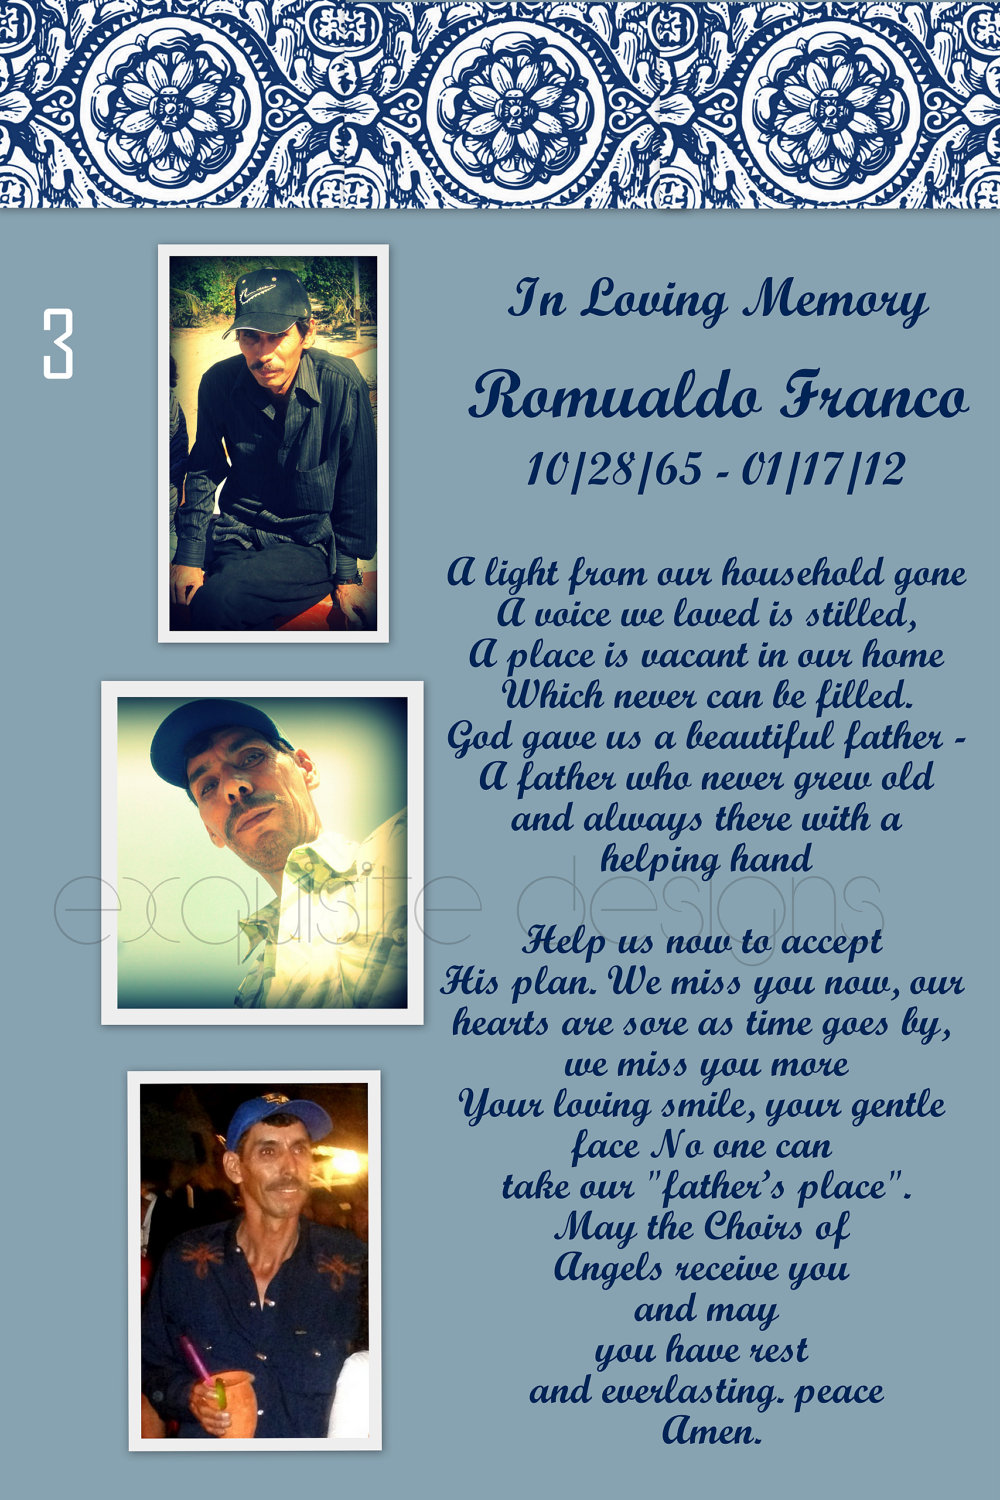 funeral memory cards free templates - resolutions for funerals examples related keywords